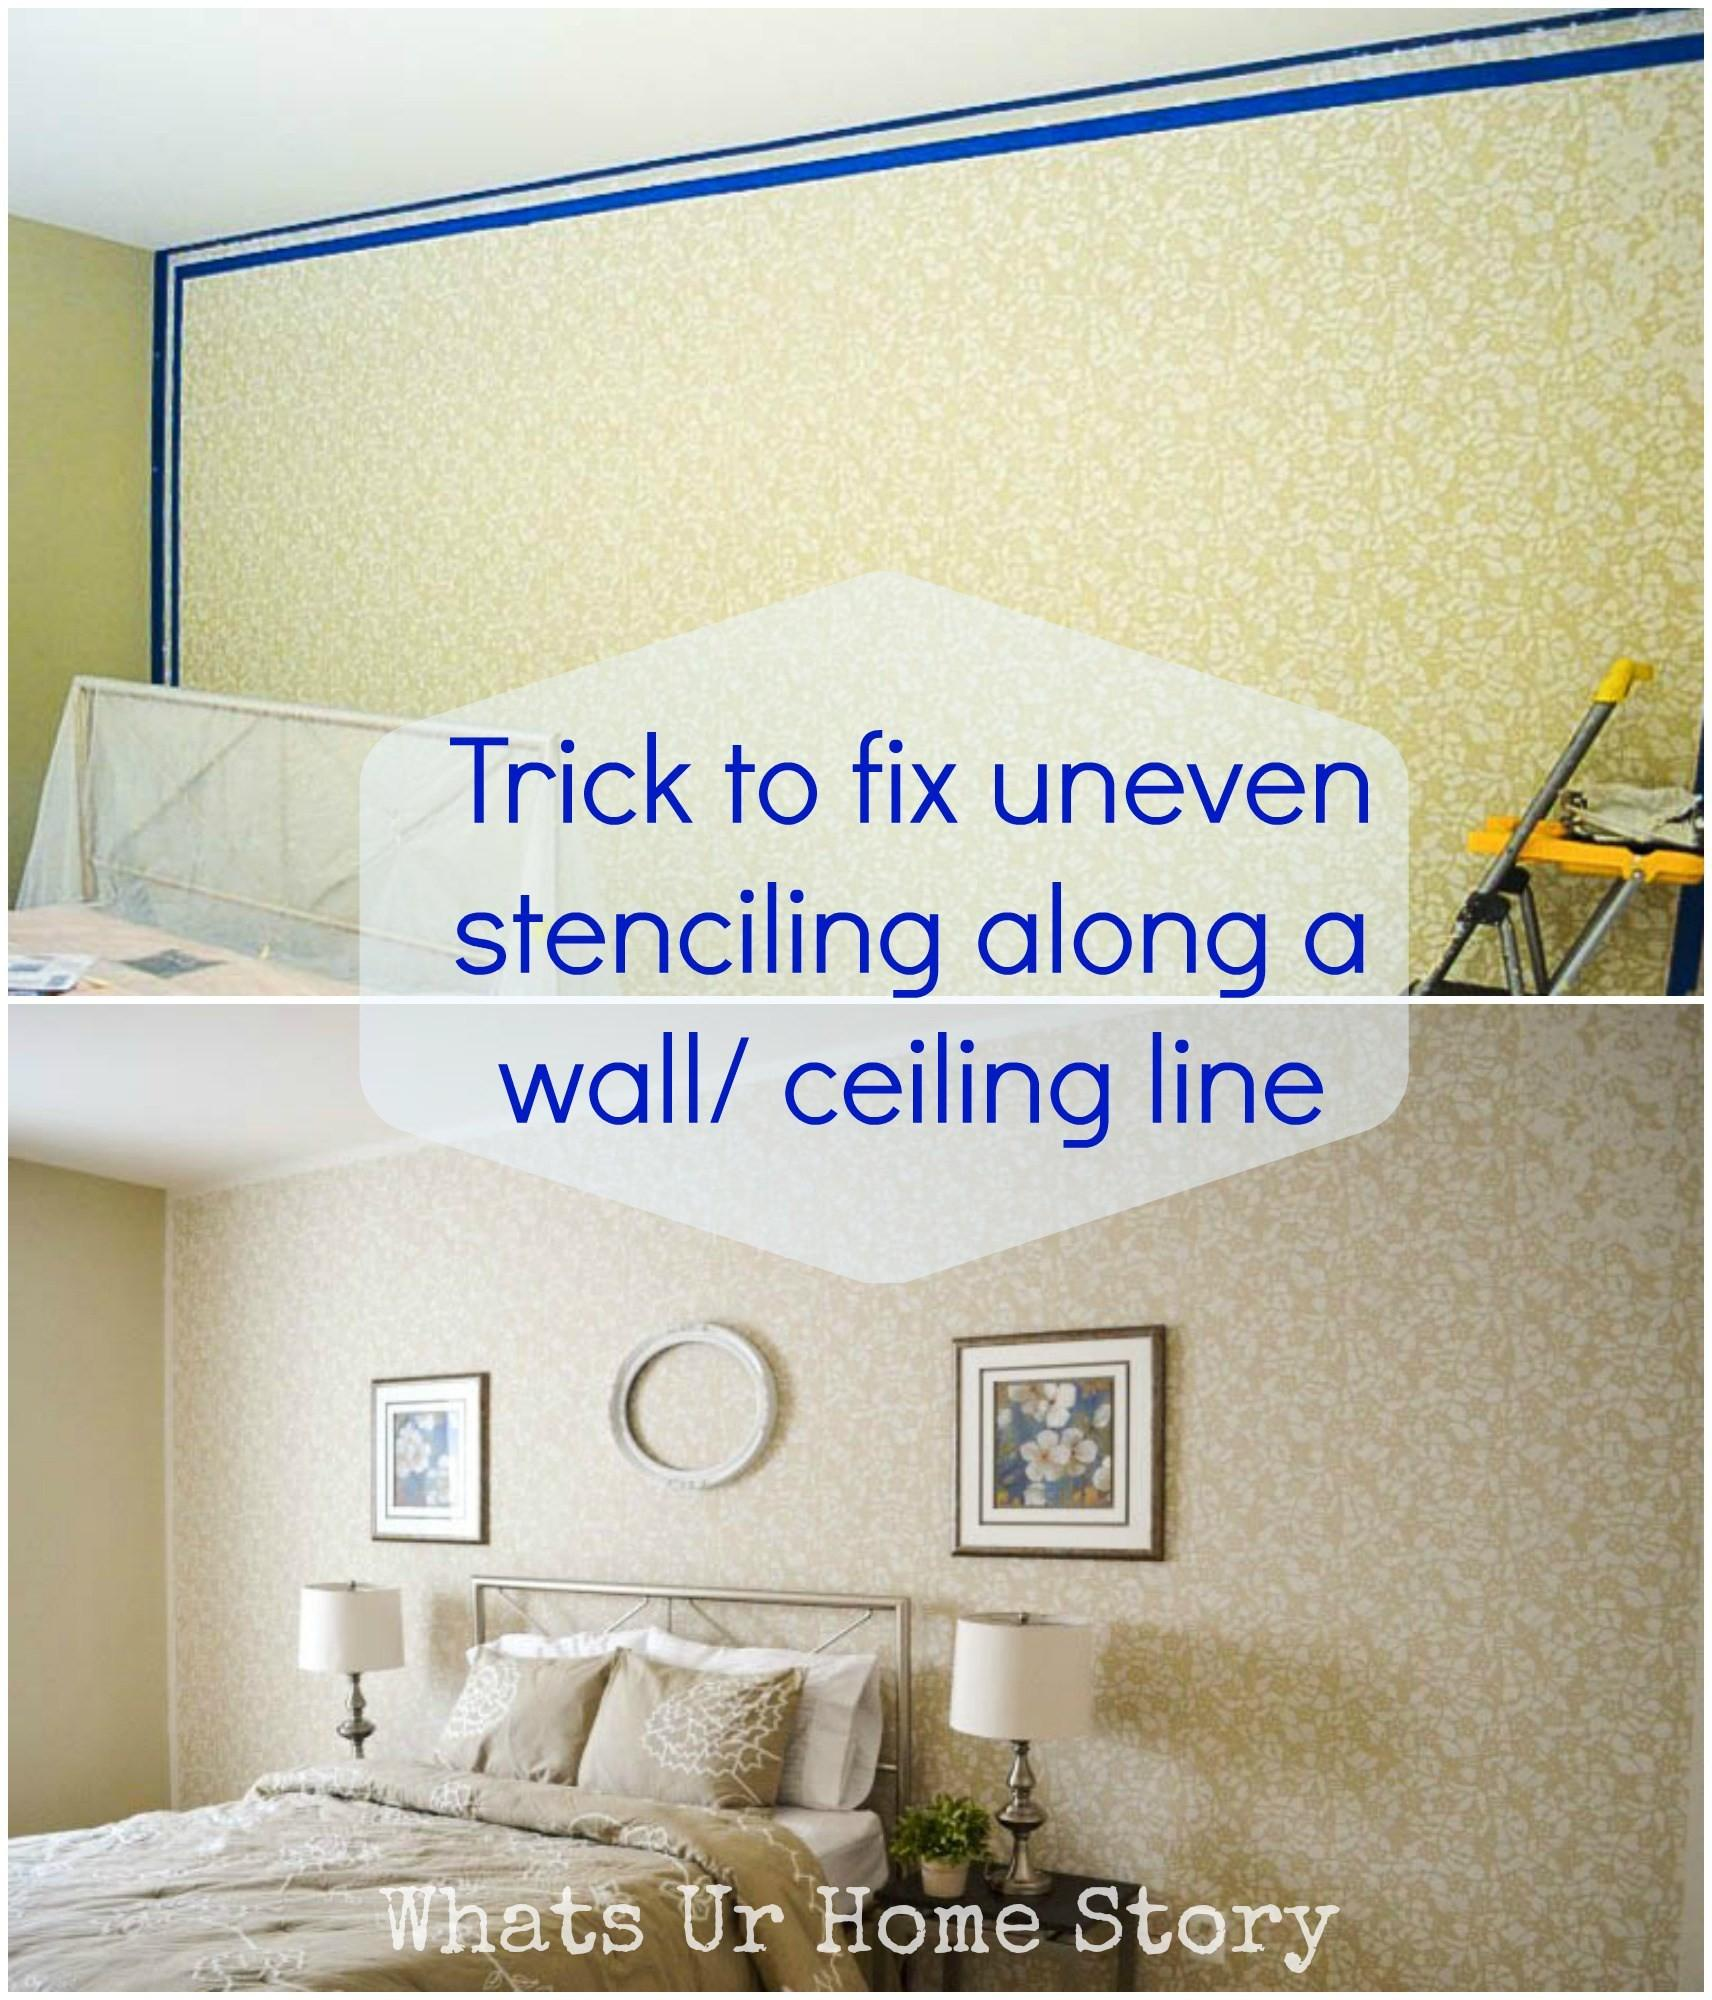 Stencil Wall Trick Fix Uneven Edges